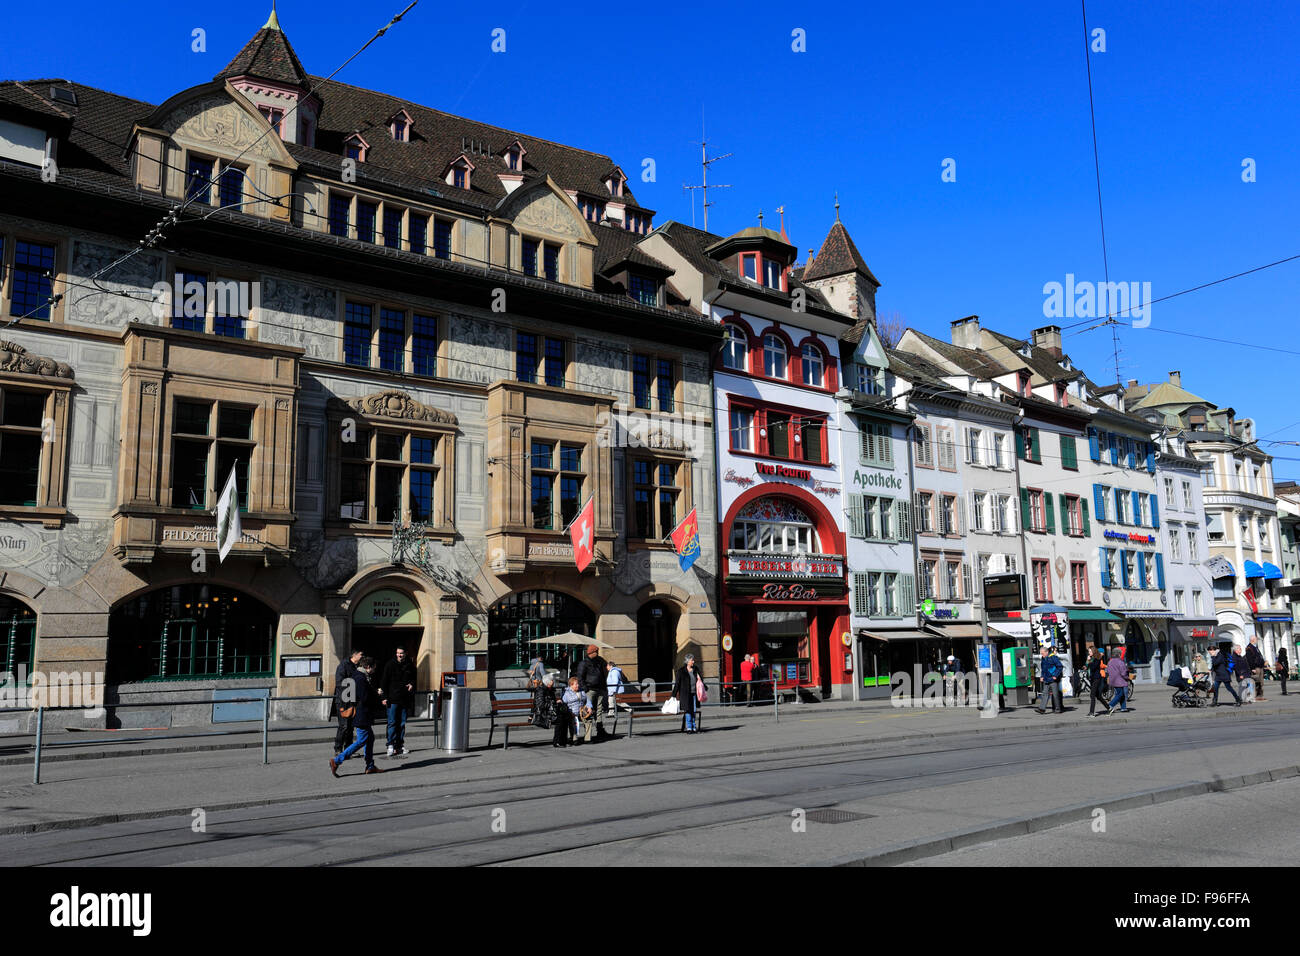 Canton Basel Scenery Stock Photos Canton Basel Scenery Stock